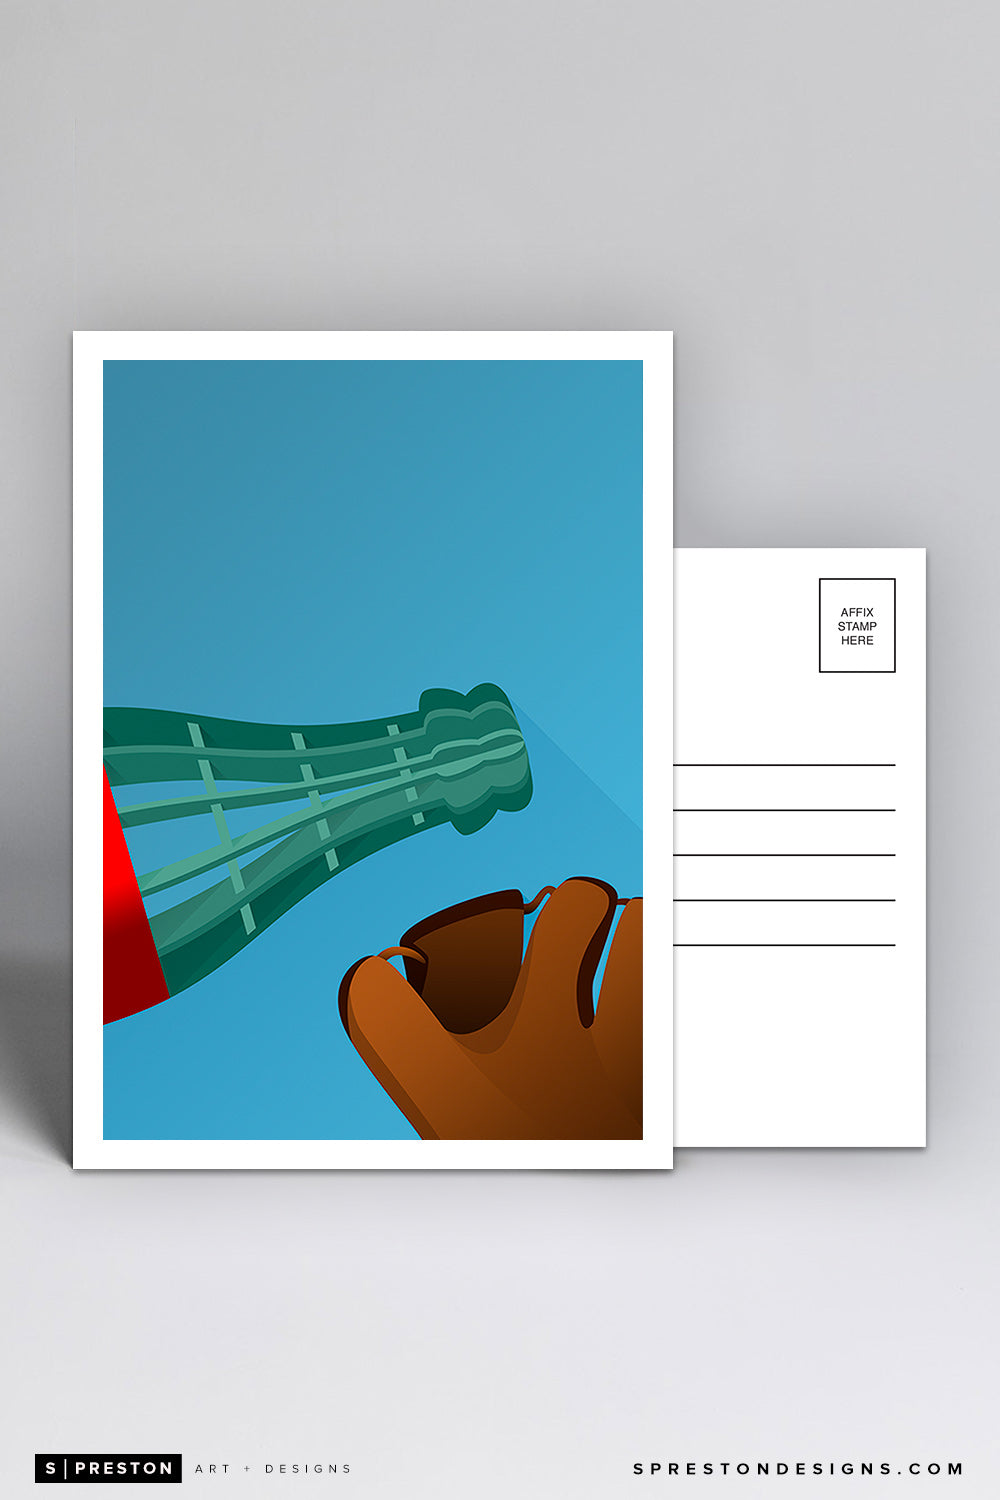 Minimalist Oracle Park Postcard (Bottle and Glove) San Francisco Giants - S. Preston